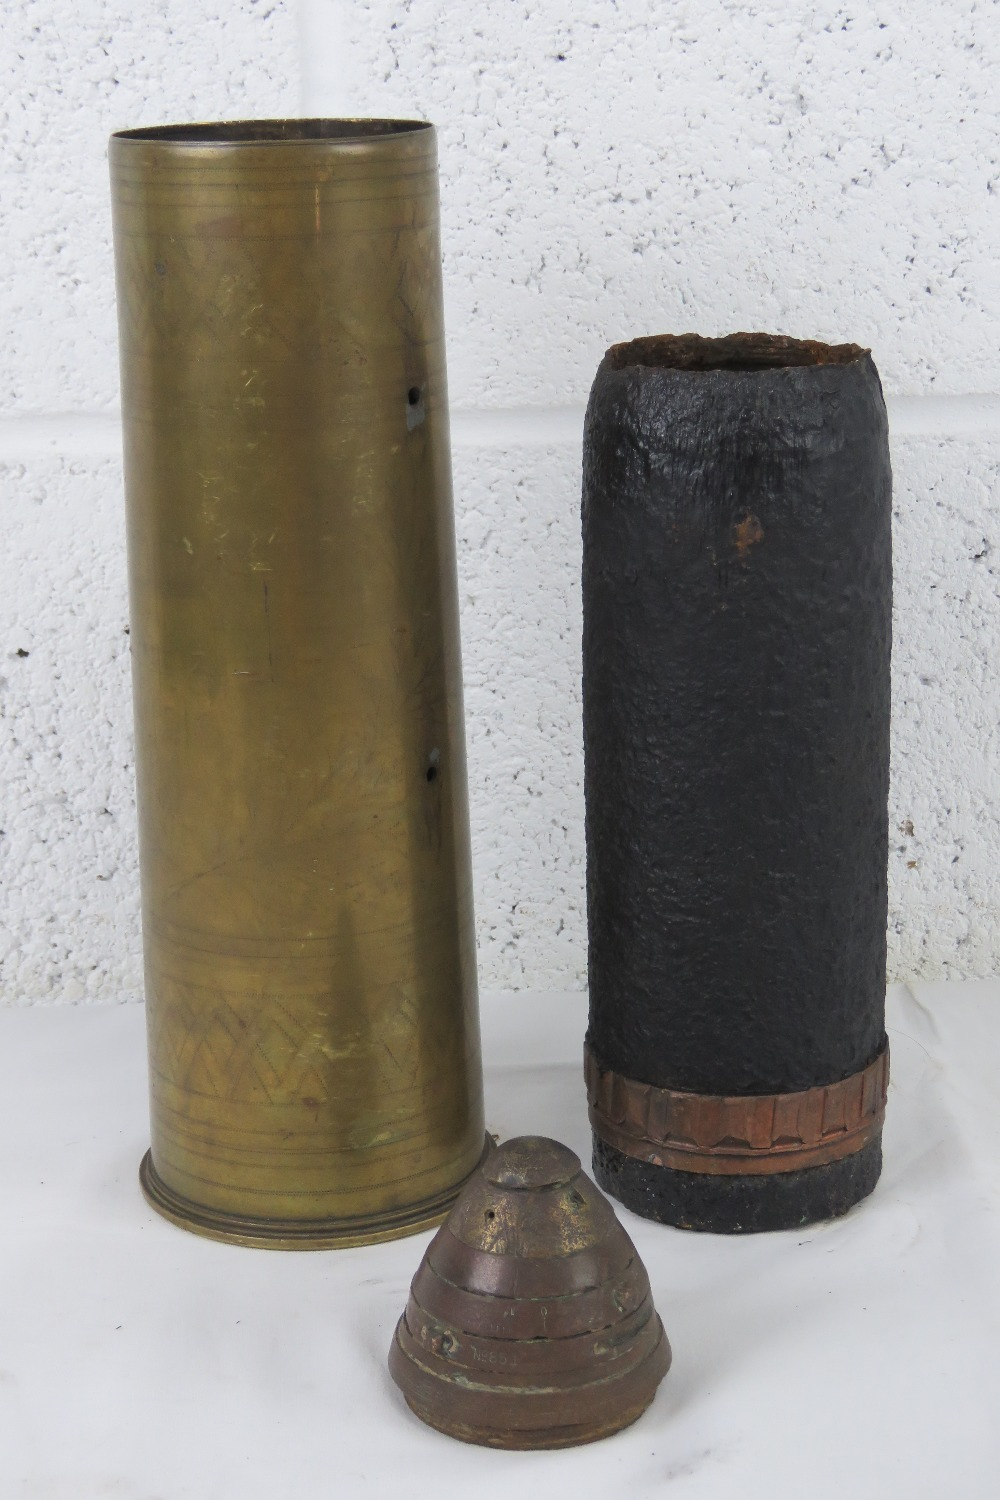 A Canadian 18pr trench art shell dated 1915, with head and fuse. - Image 2 of 6